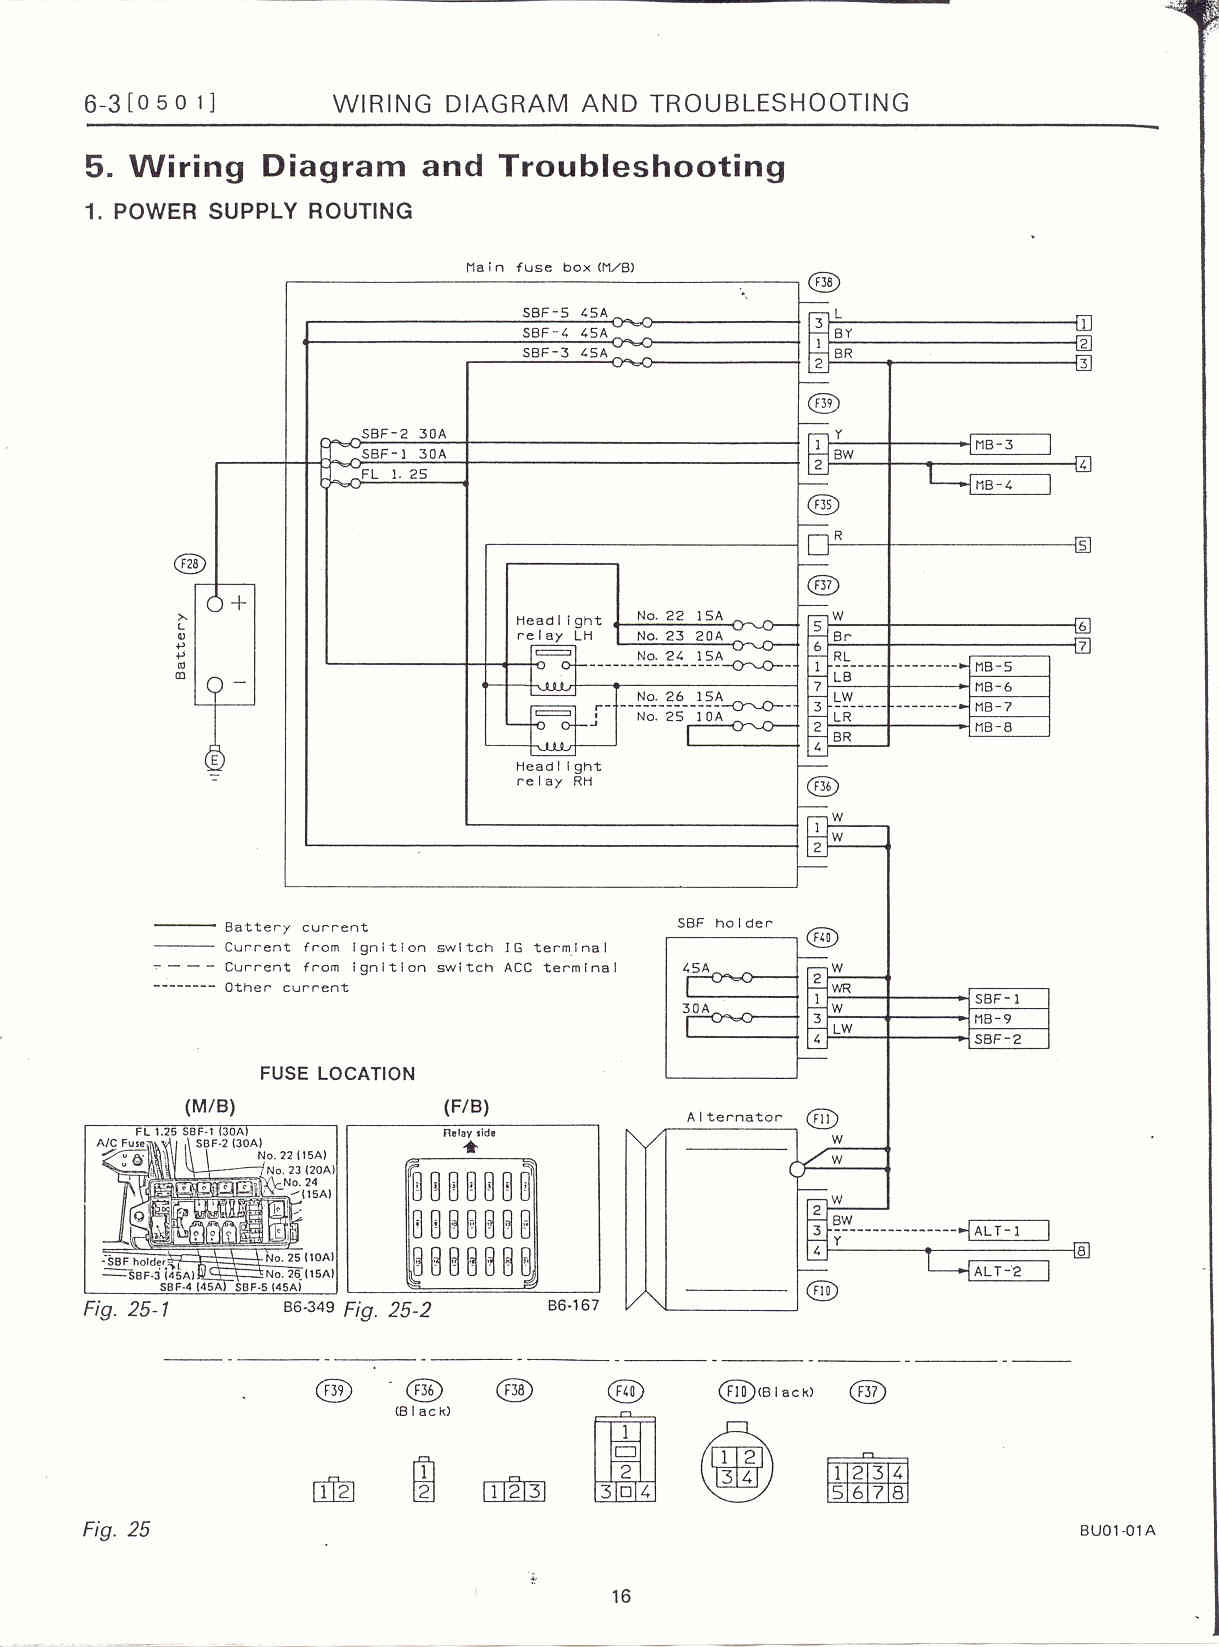 6 3_power_supply_routing1?resize\=665%2C898 1990 subaru legacy with no fuse box 1990 chevy truck fuse box 1990 subaru legacy fuse box diagram at fashall.co